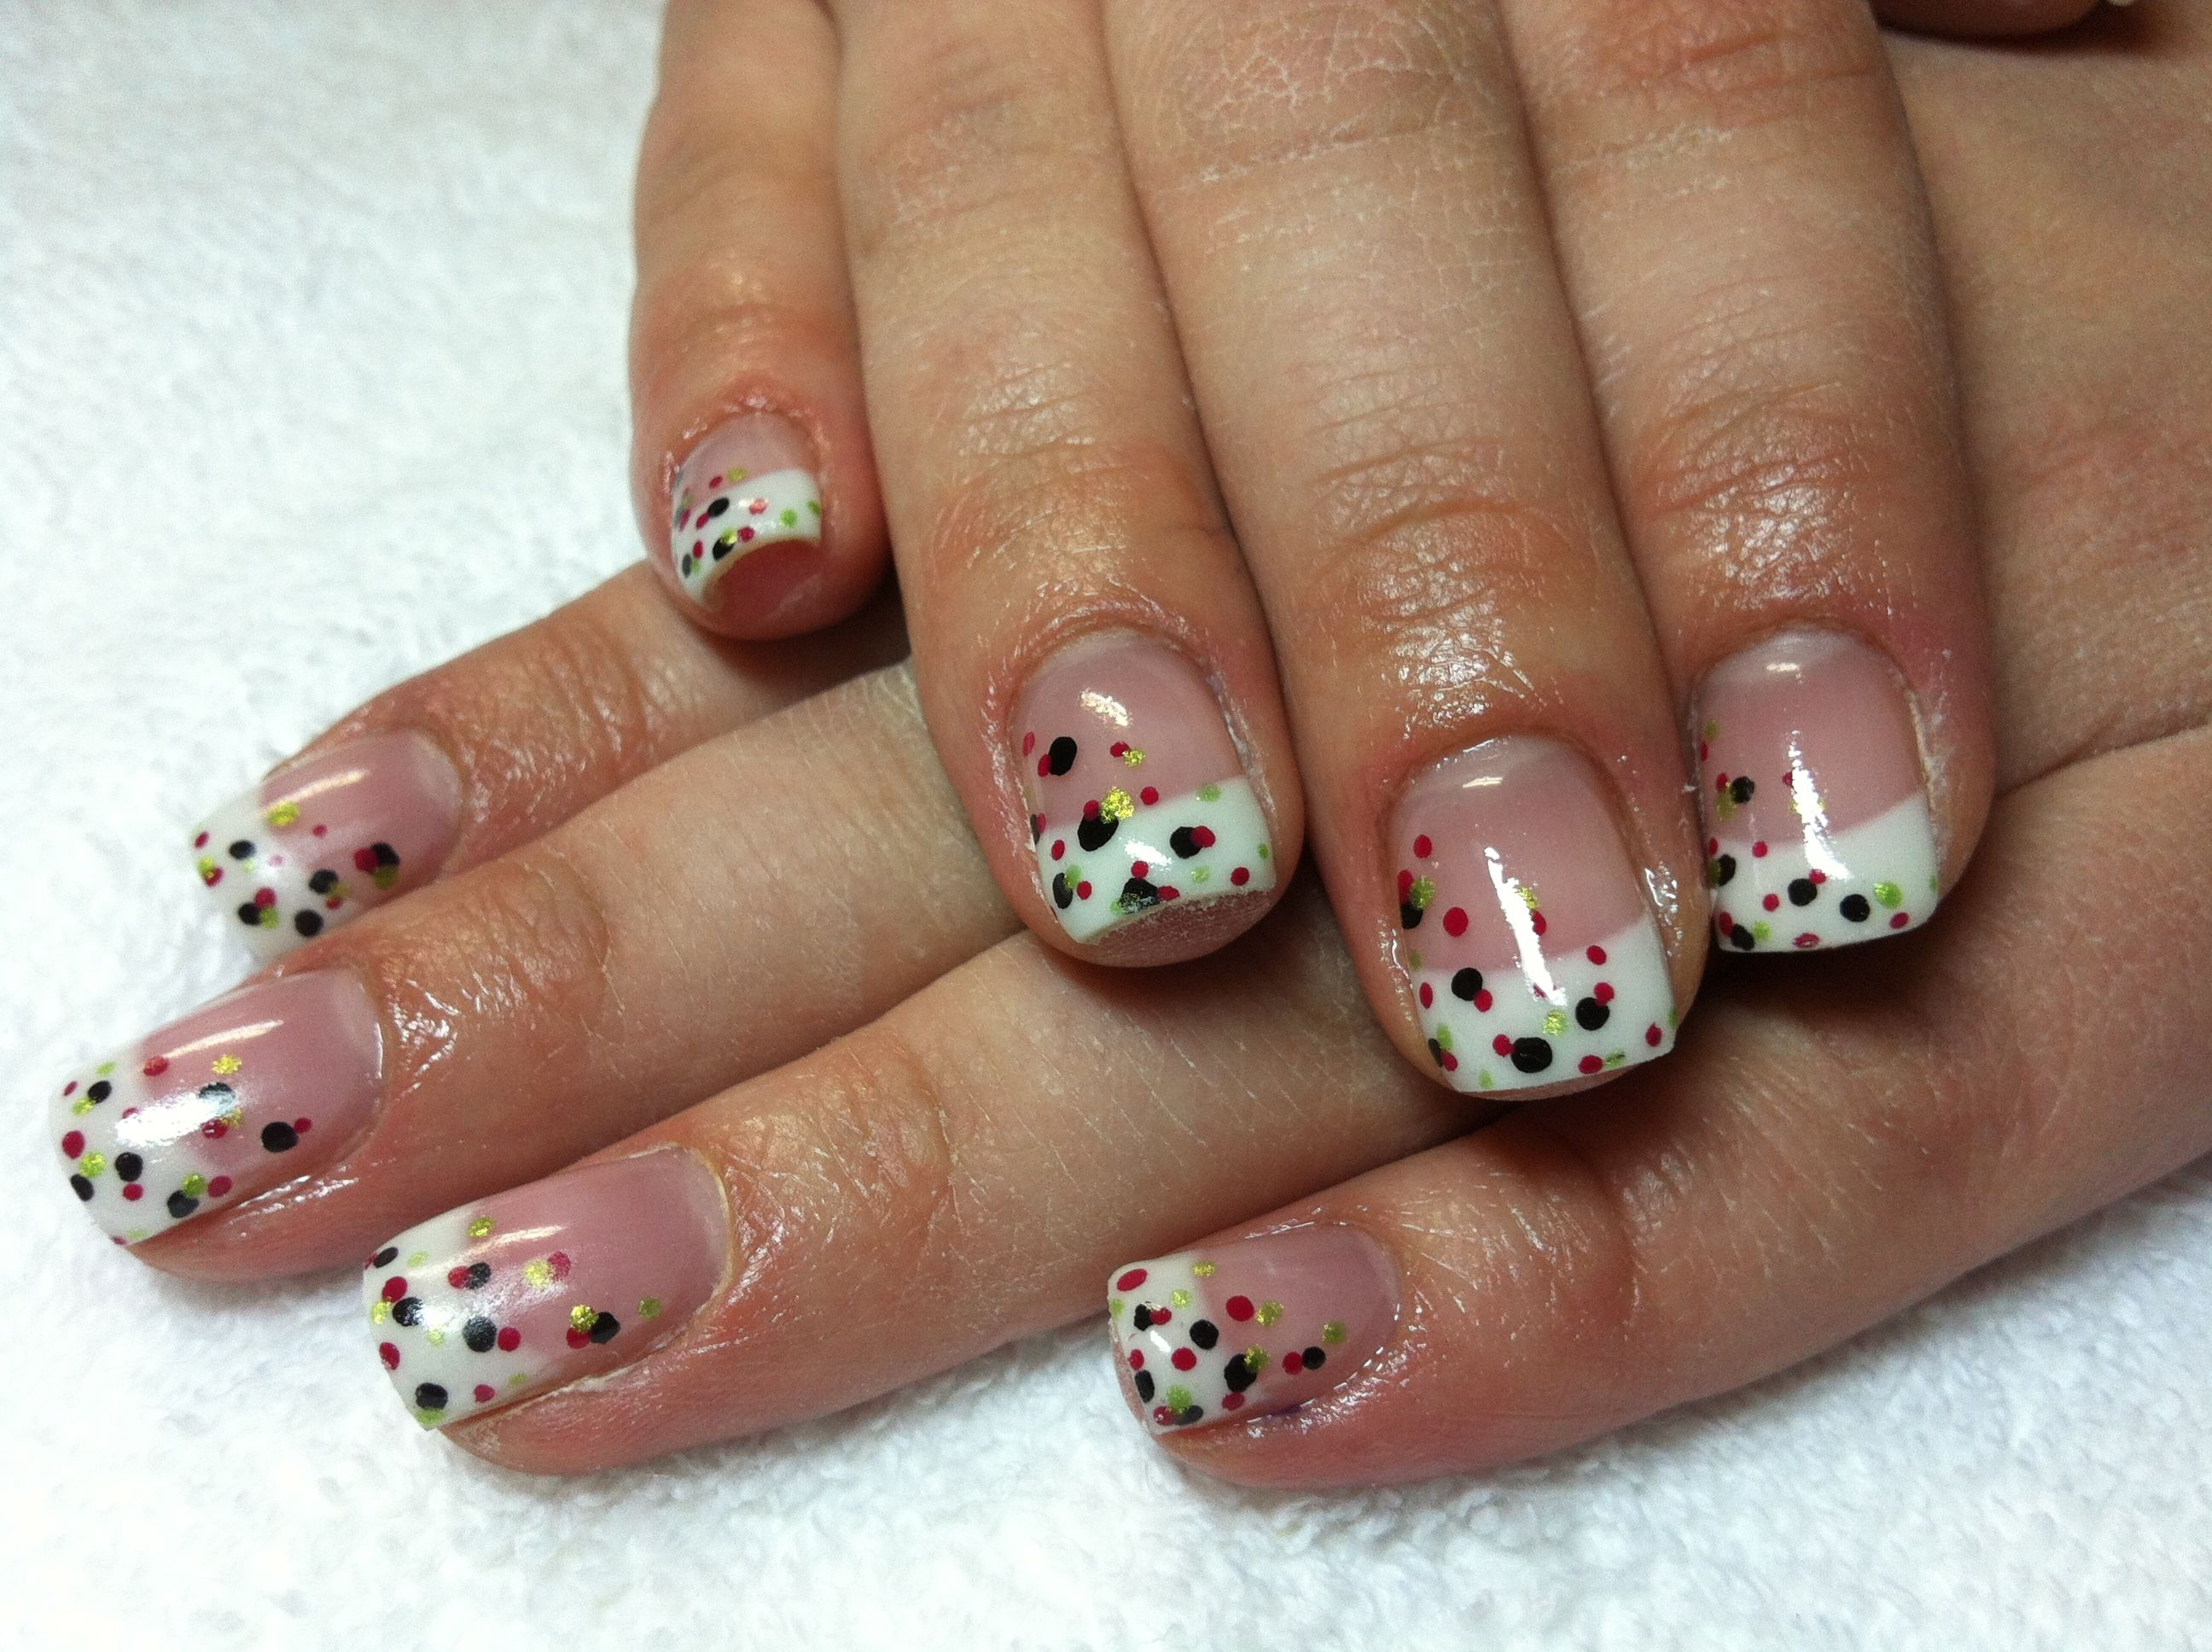 nail designs on french tips - Google Search | MY NAILS ARE SO CUTE ...